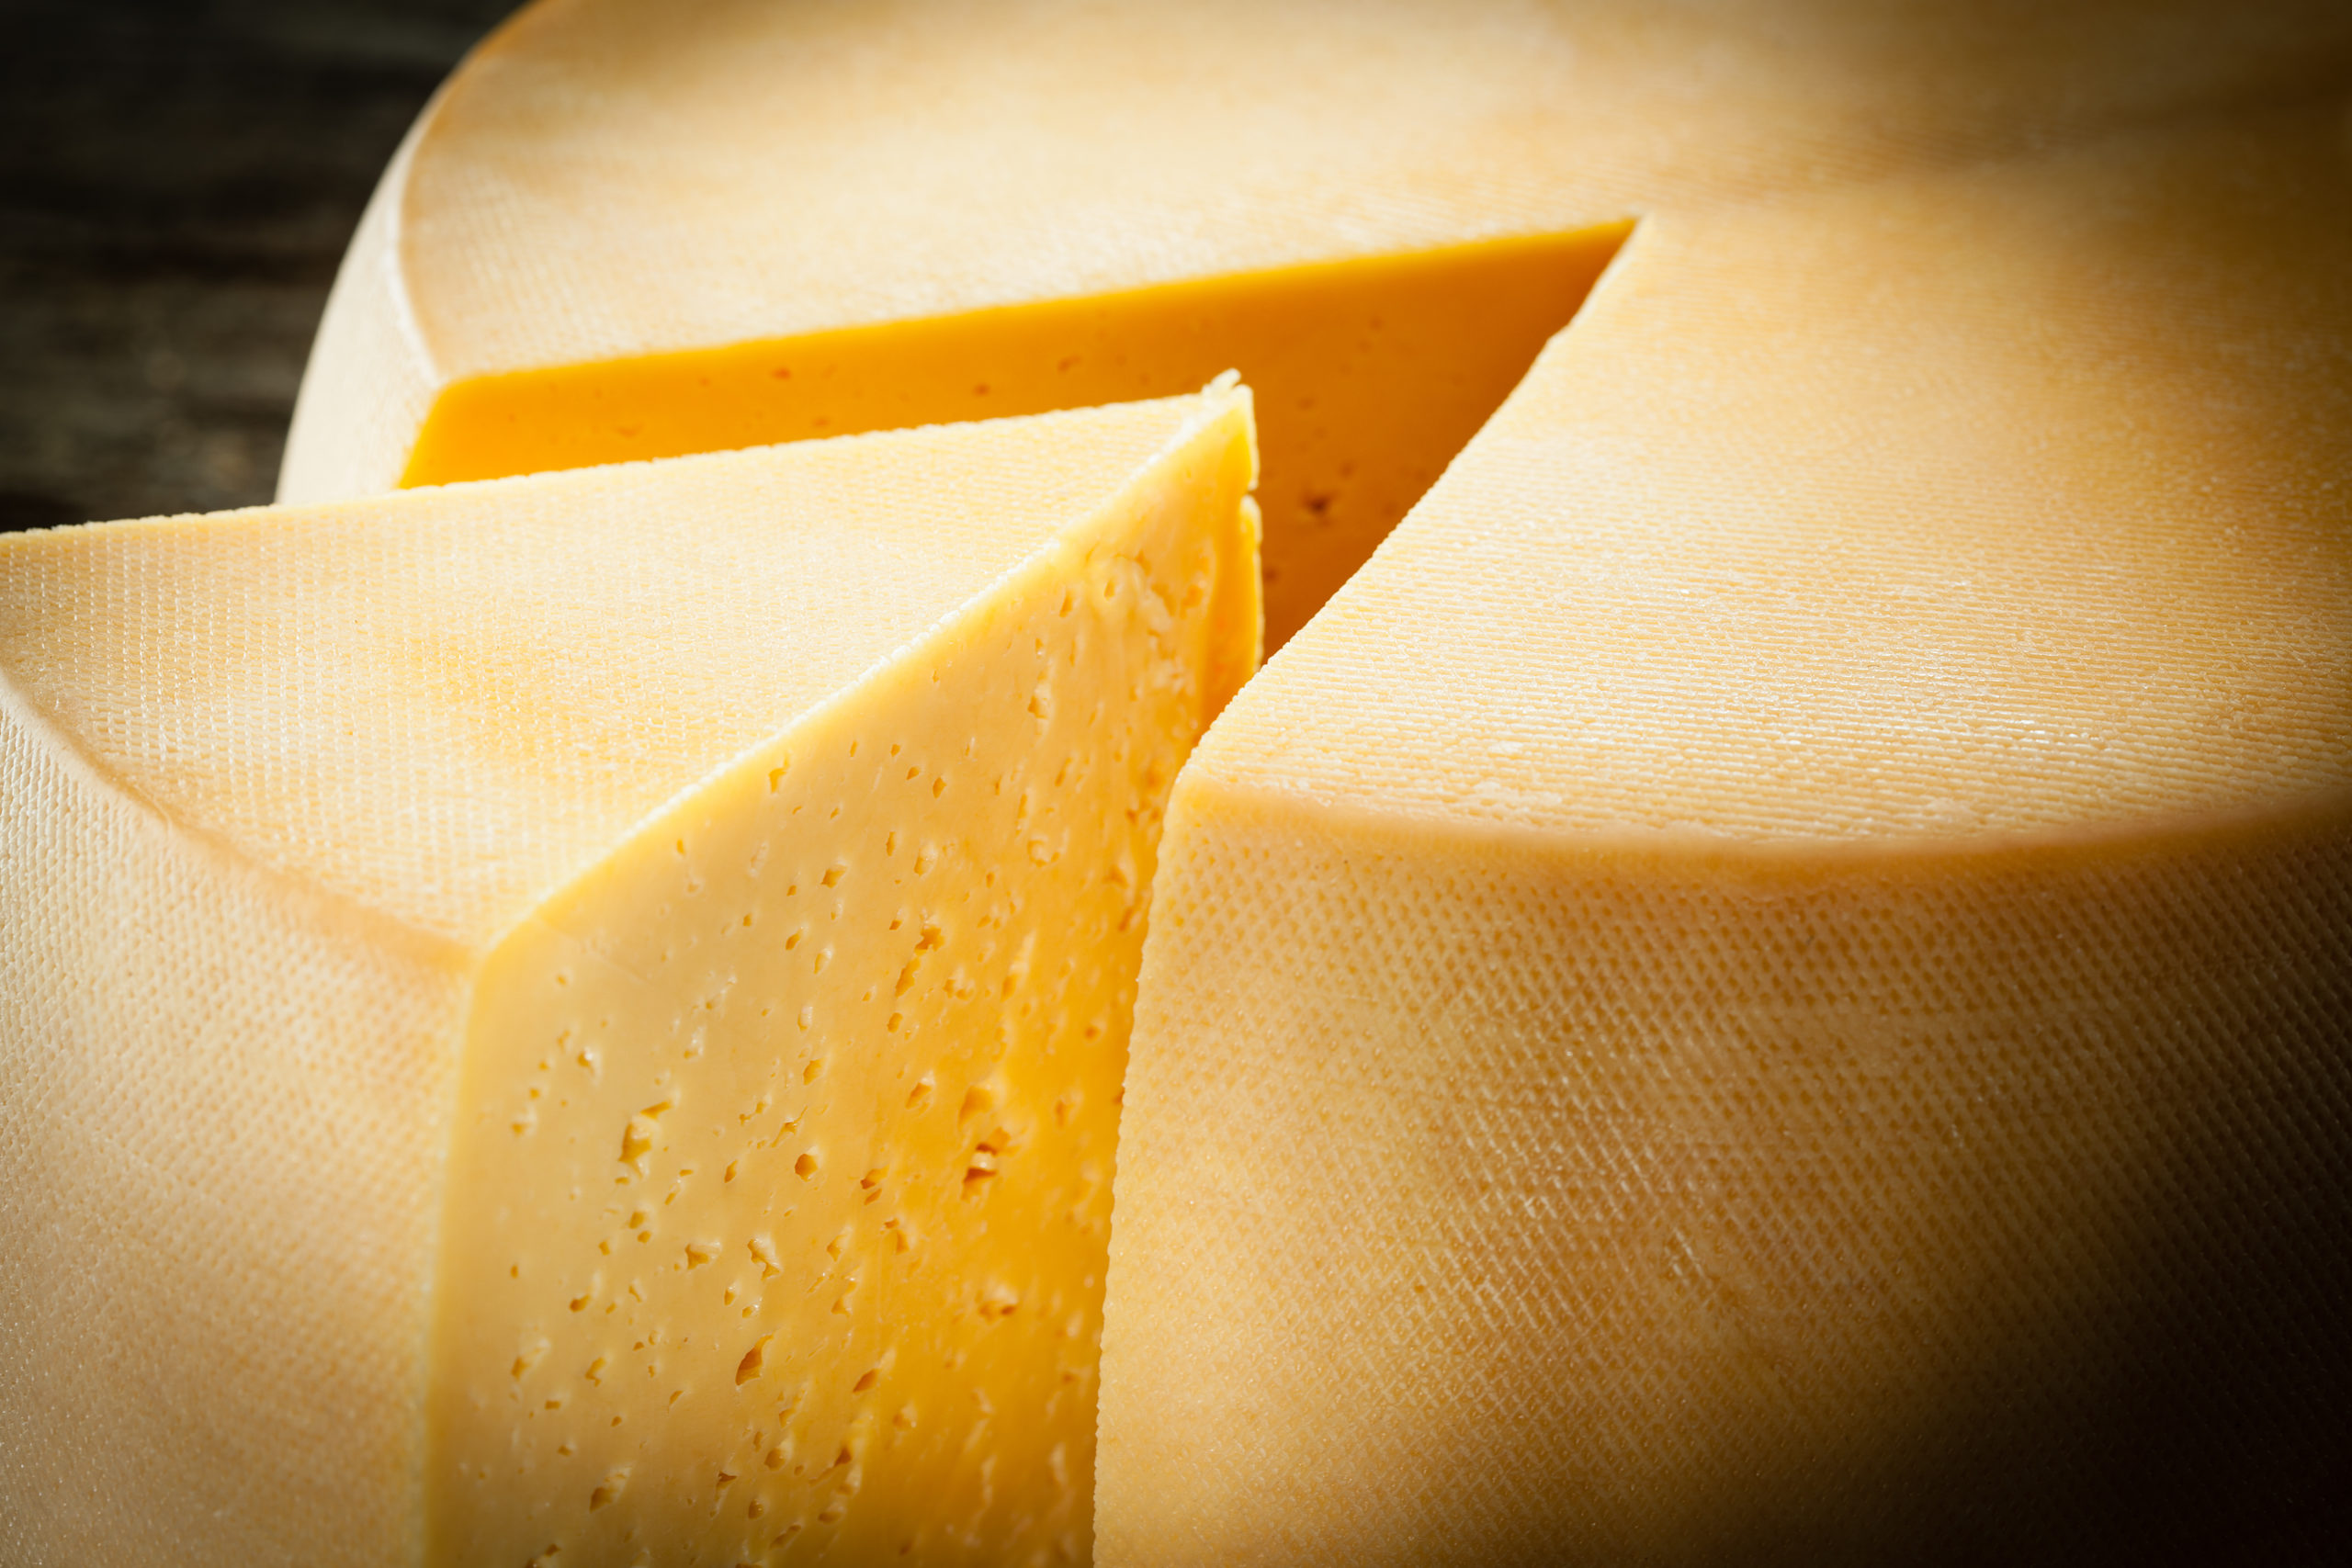 economic news roundup and Cheddar cheese prices